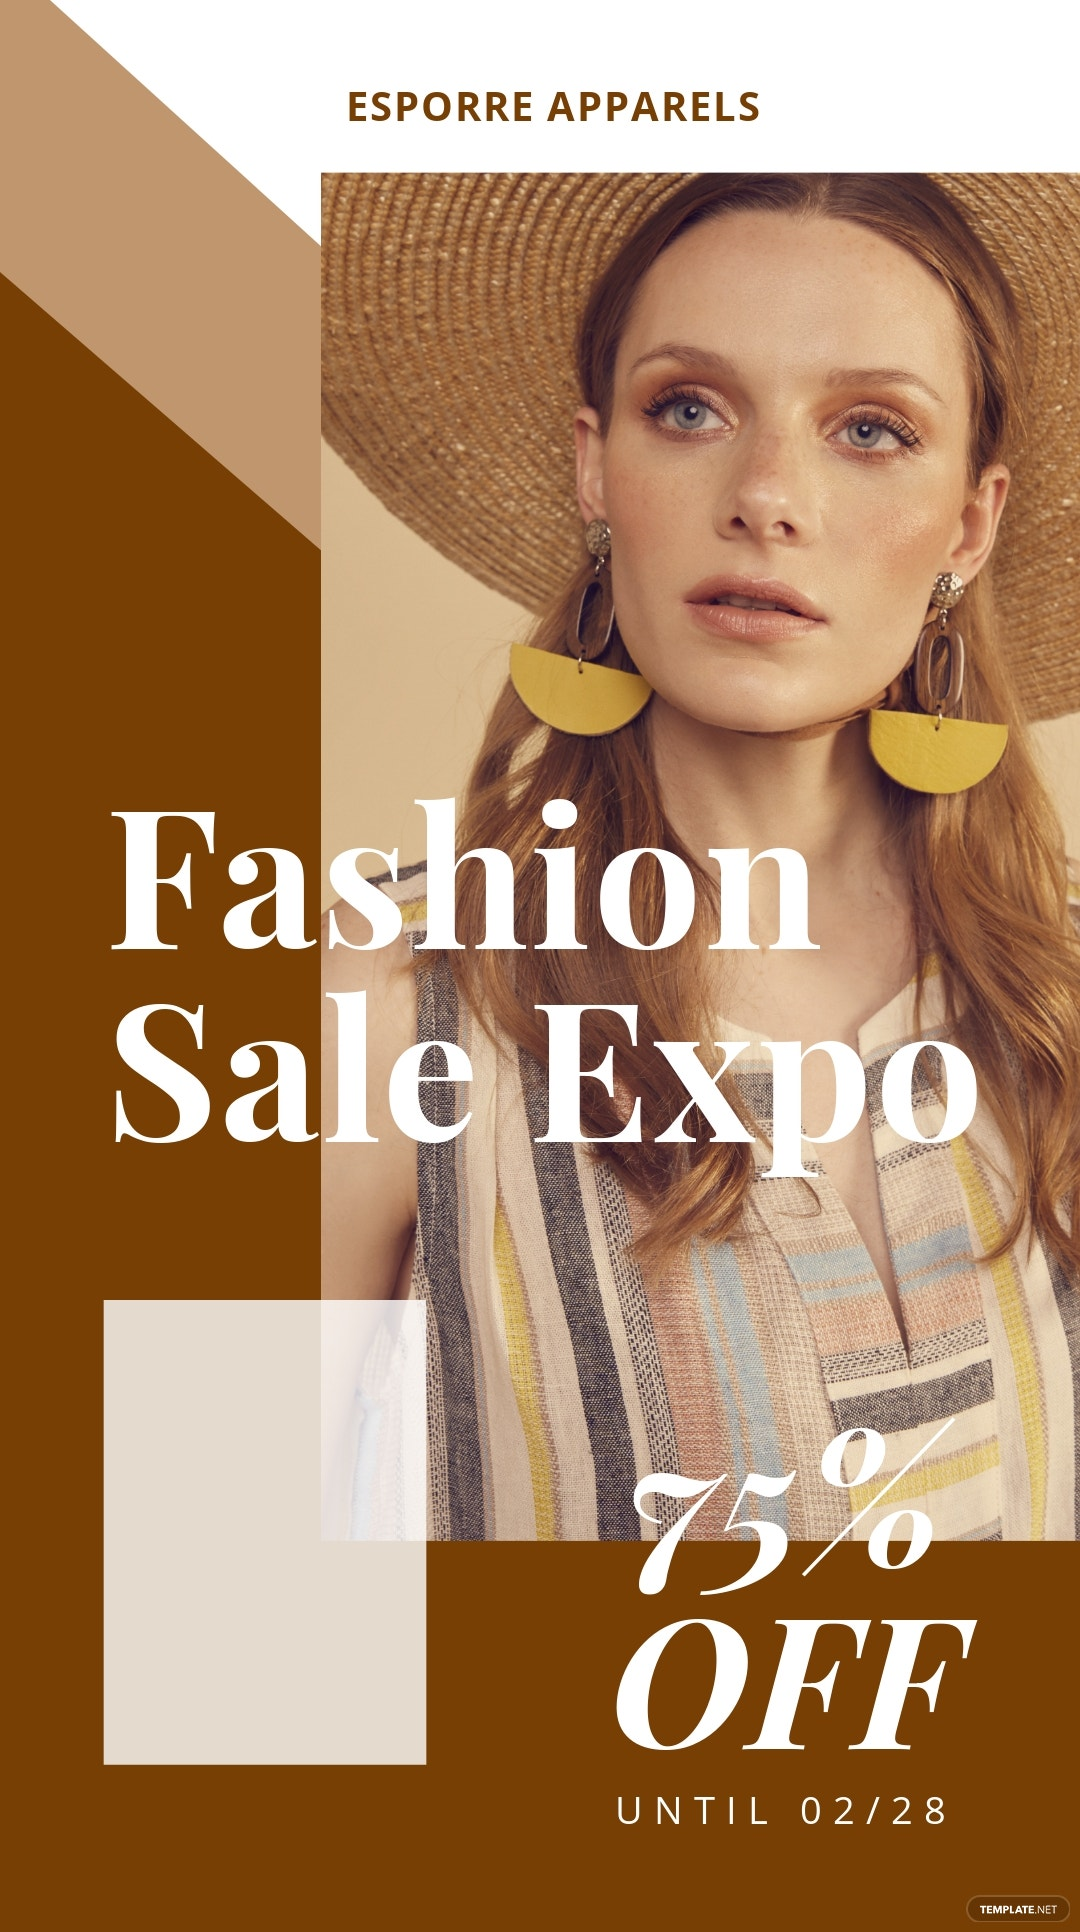 Fashion Sale Expo Whatsapp Image Post Template